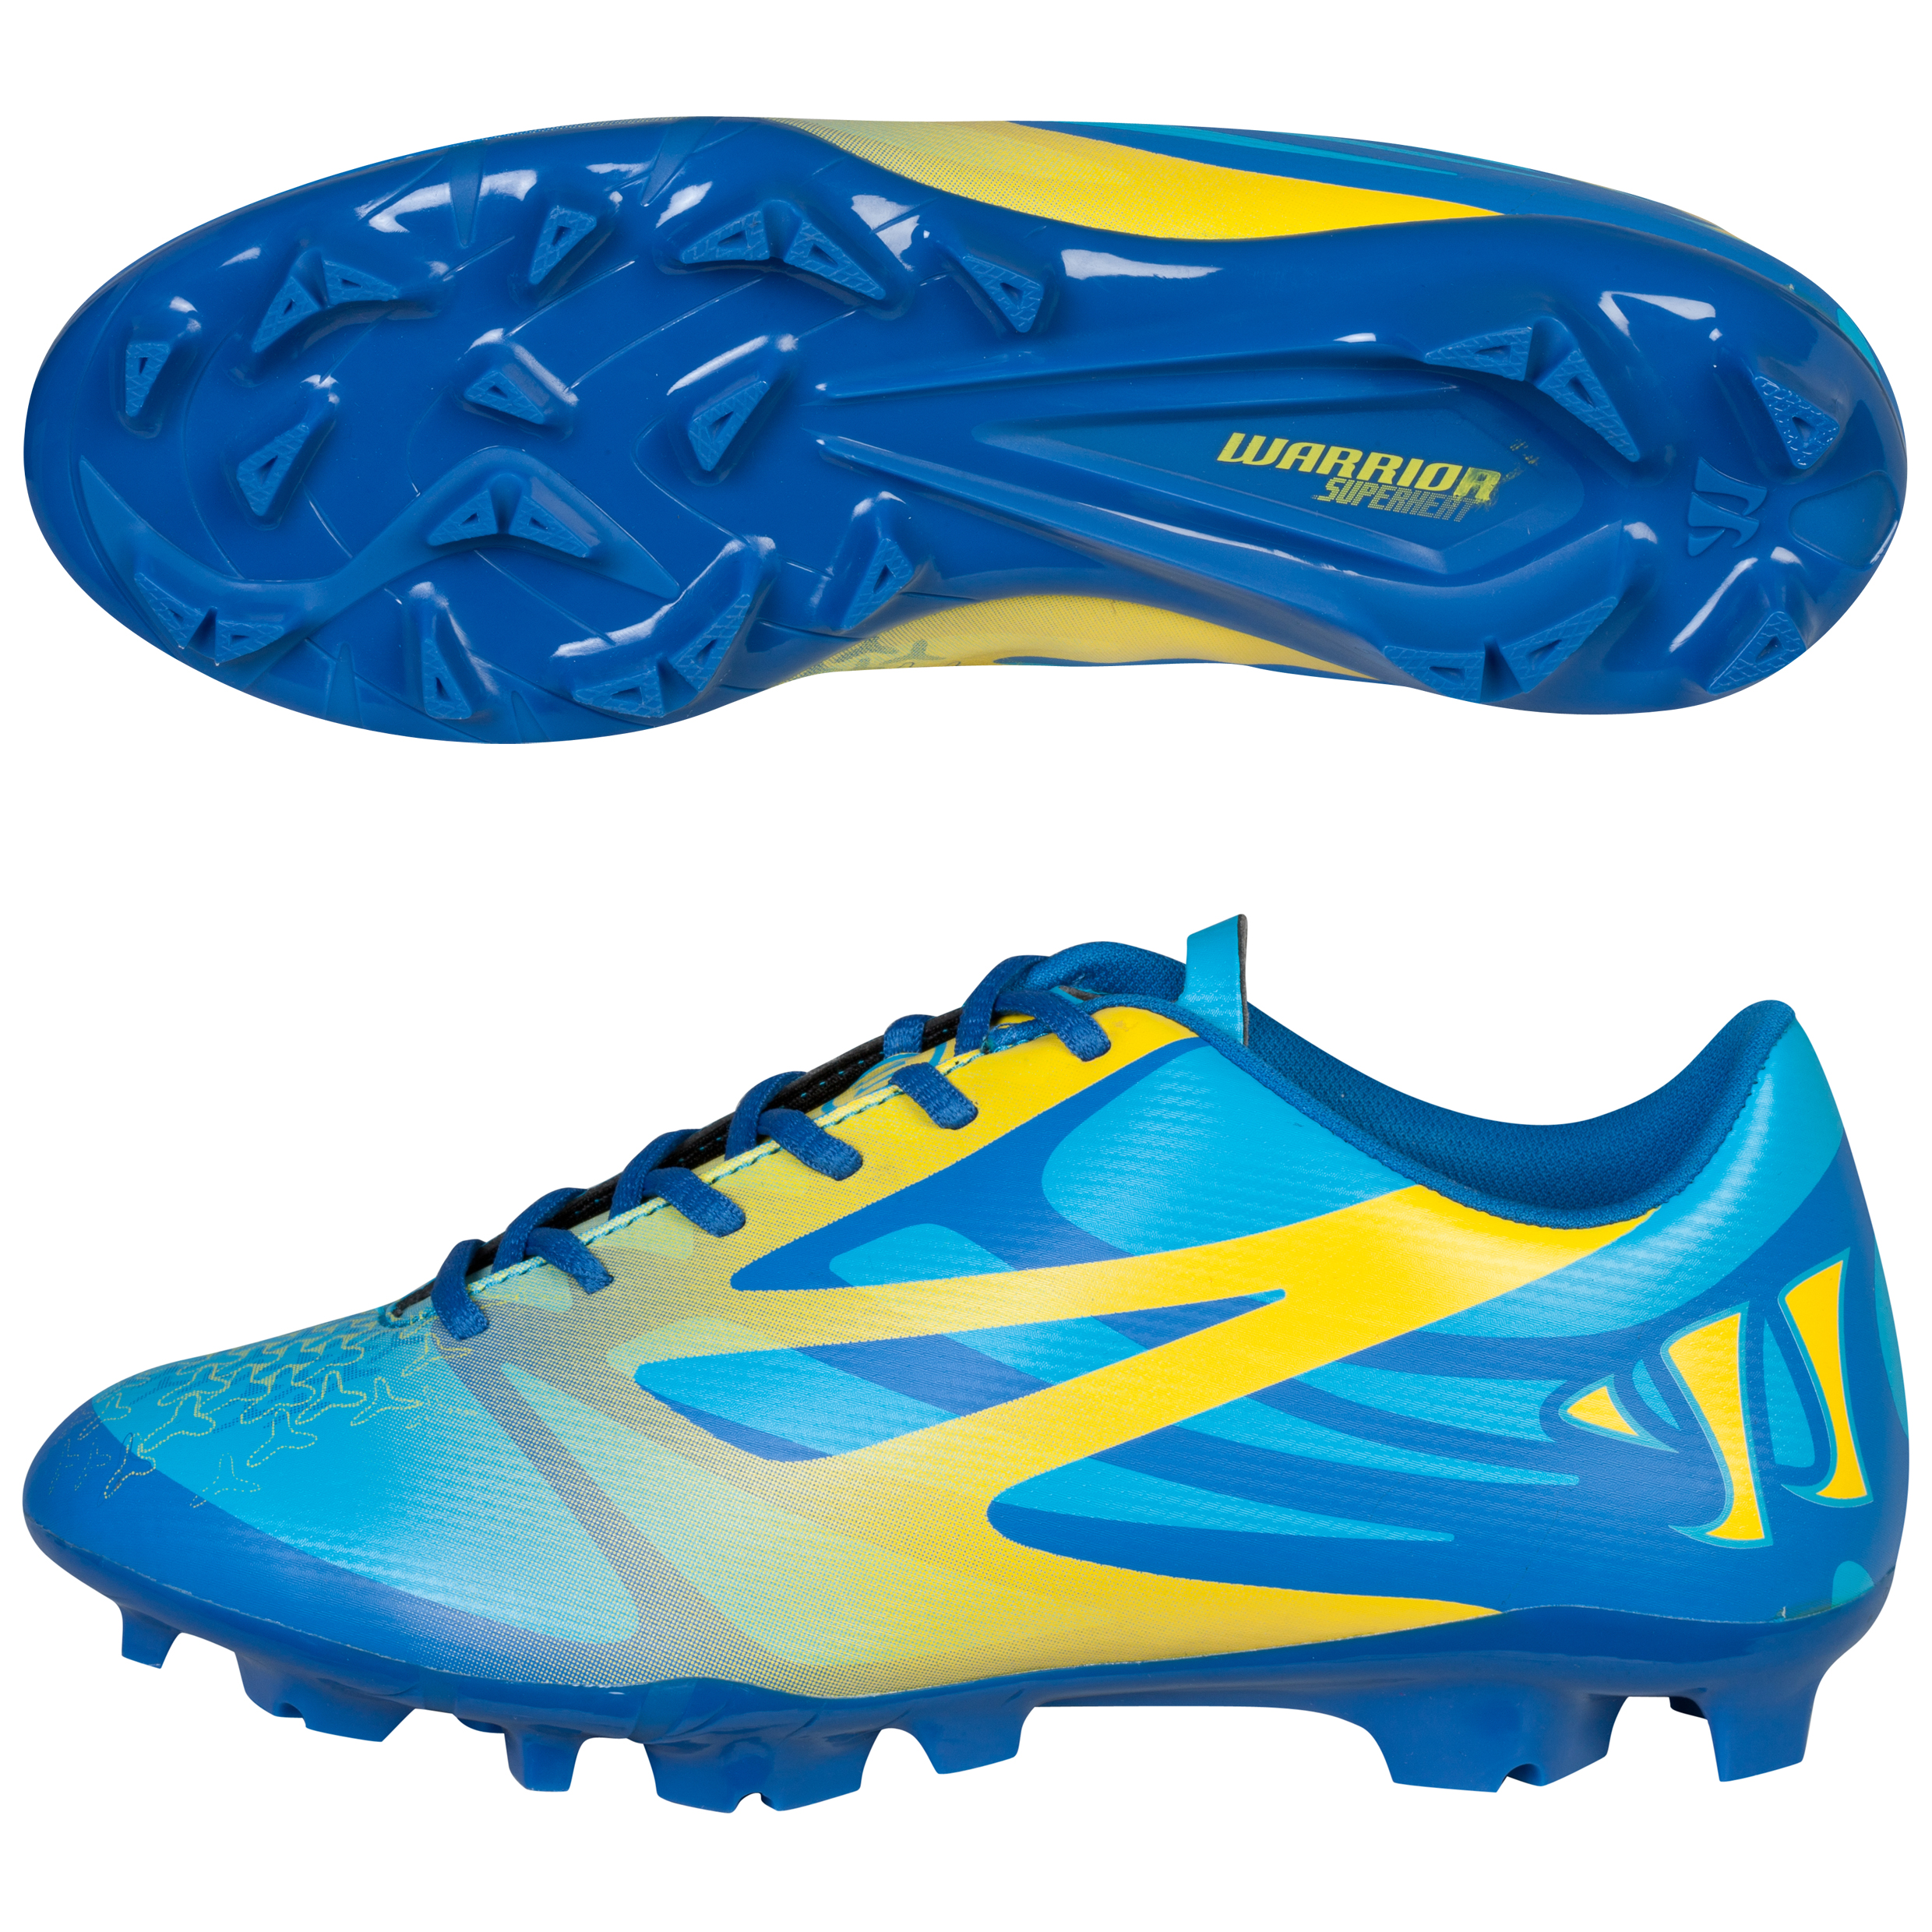 Warrior Superheat Combat Firm Ground Football Boots - Kids Blue